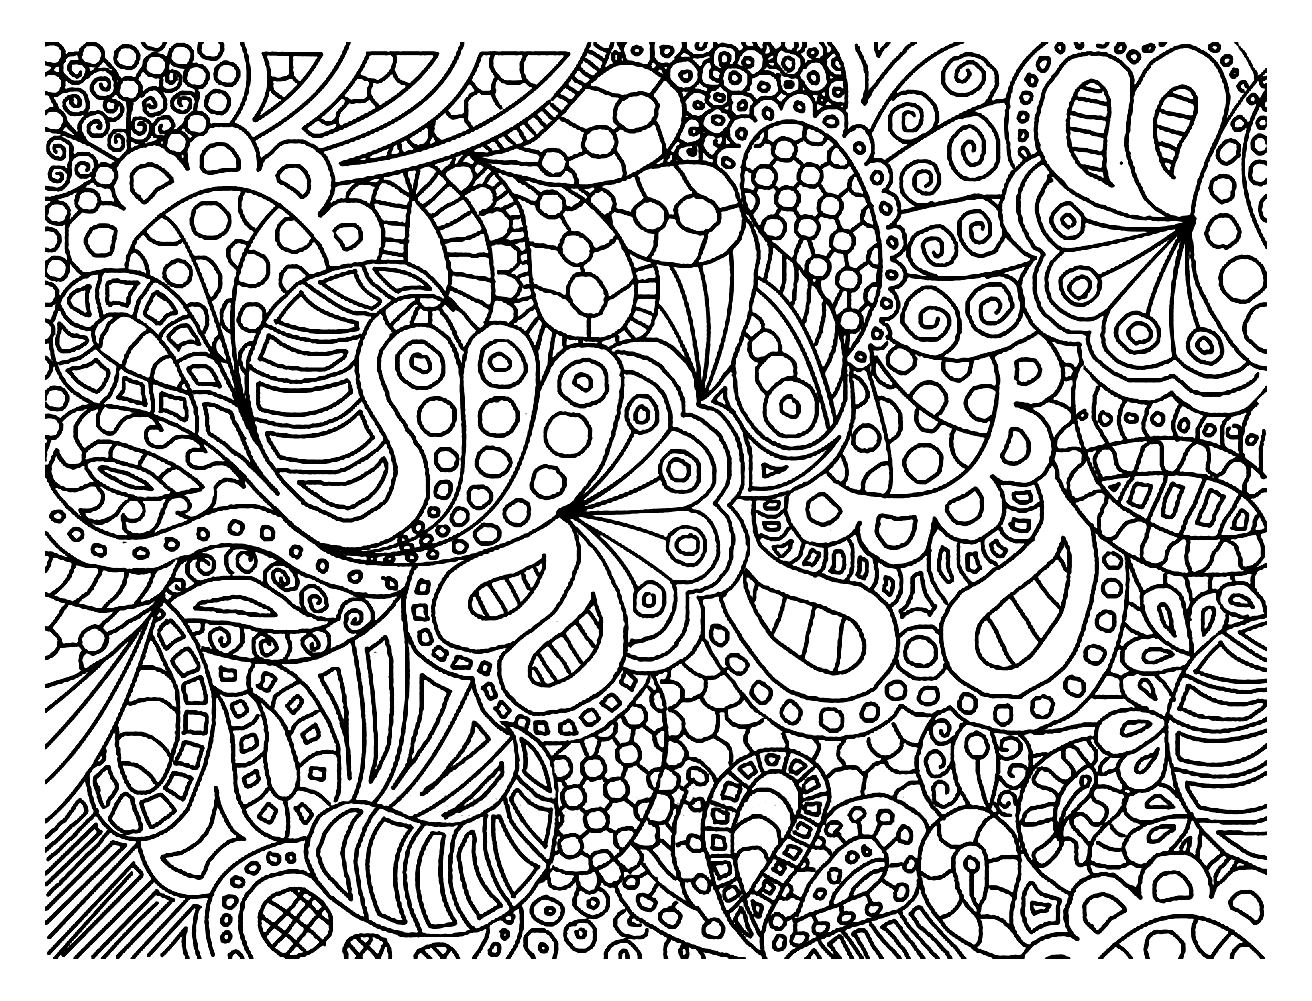 Scribble Drawing In Art Therapy : Doodle art doodling coloring